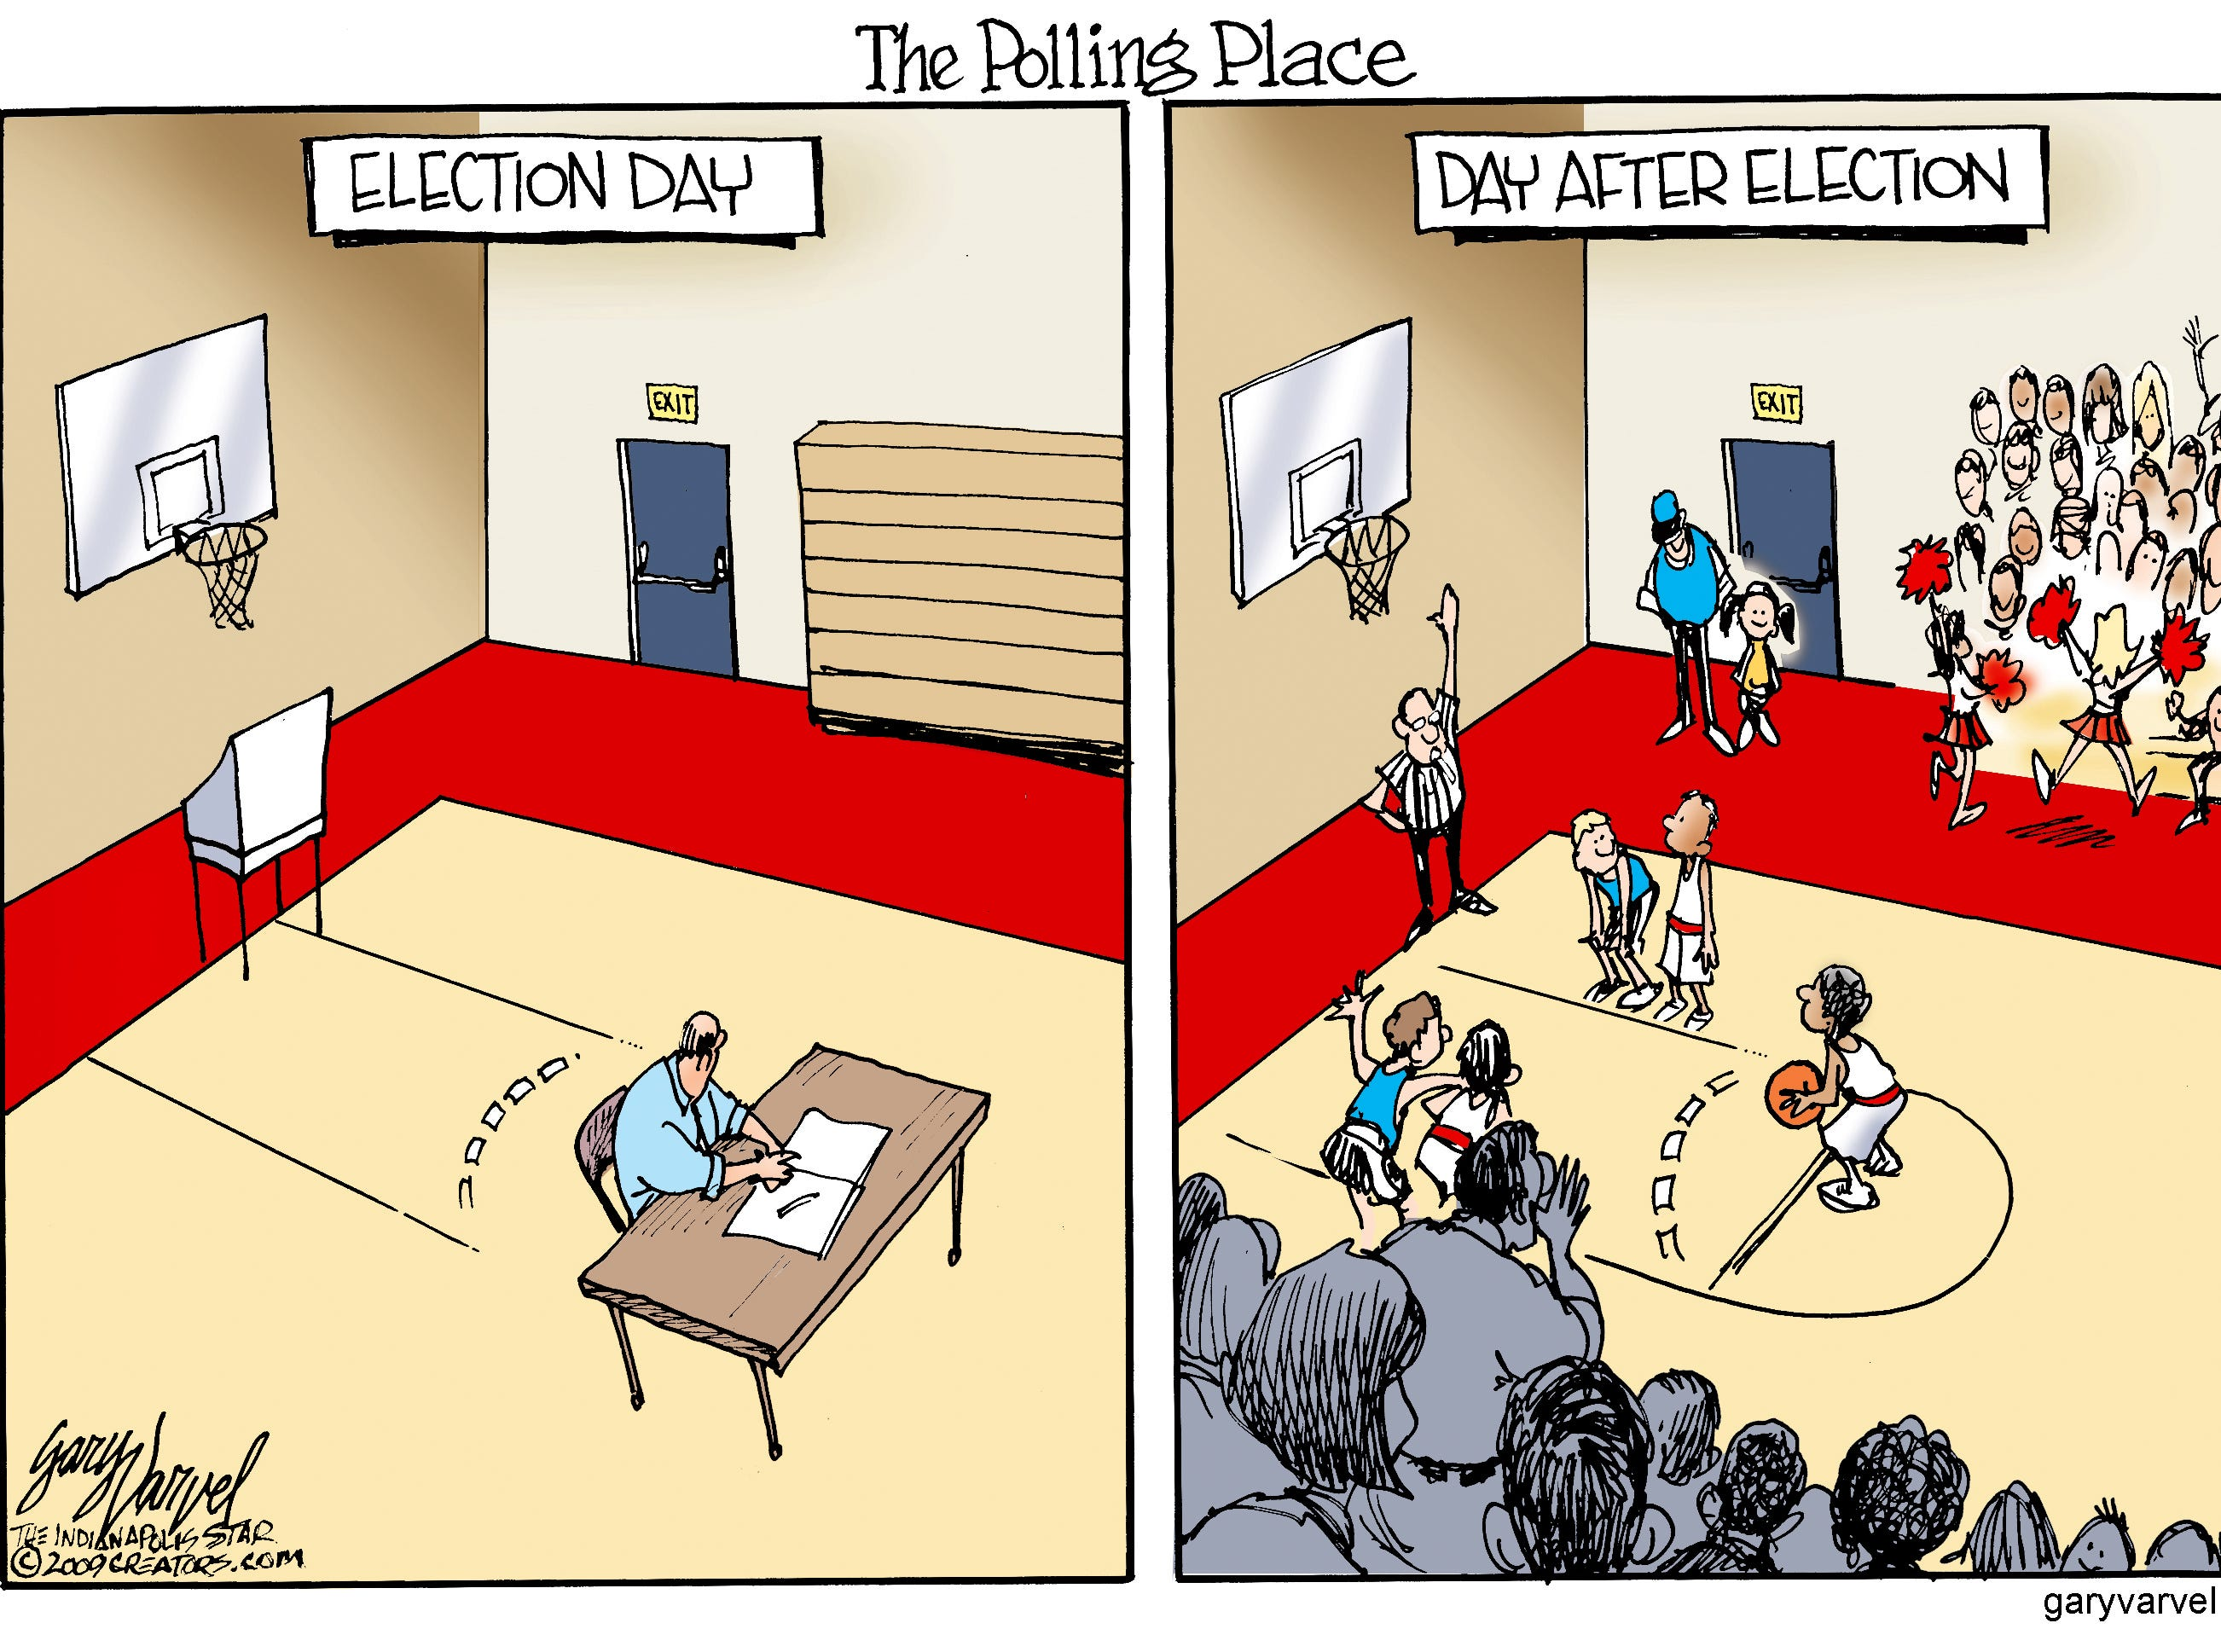 Some voters are more interested in other things.